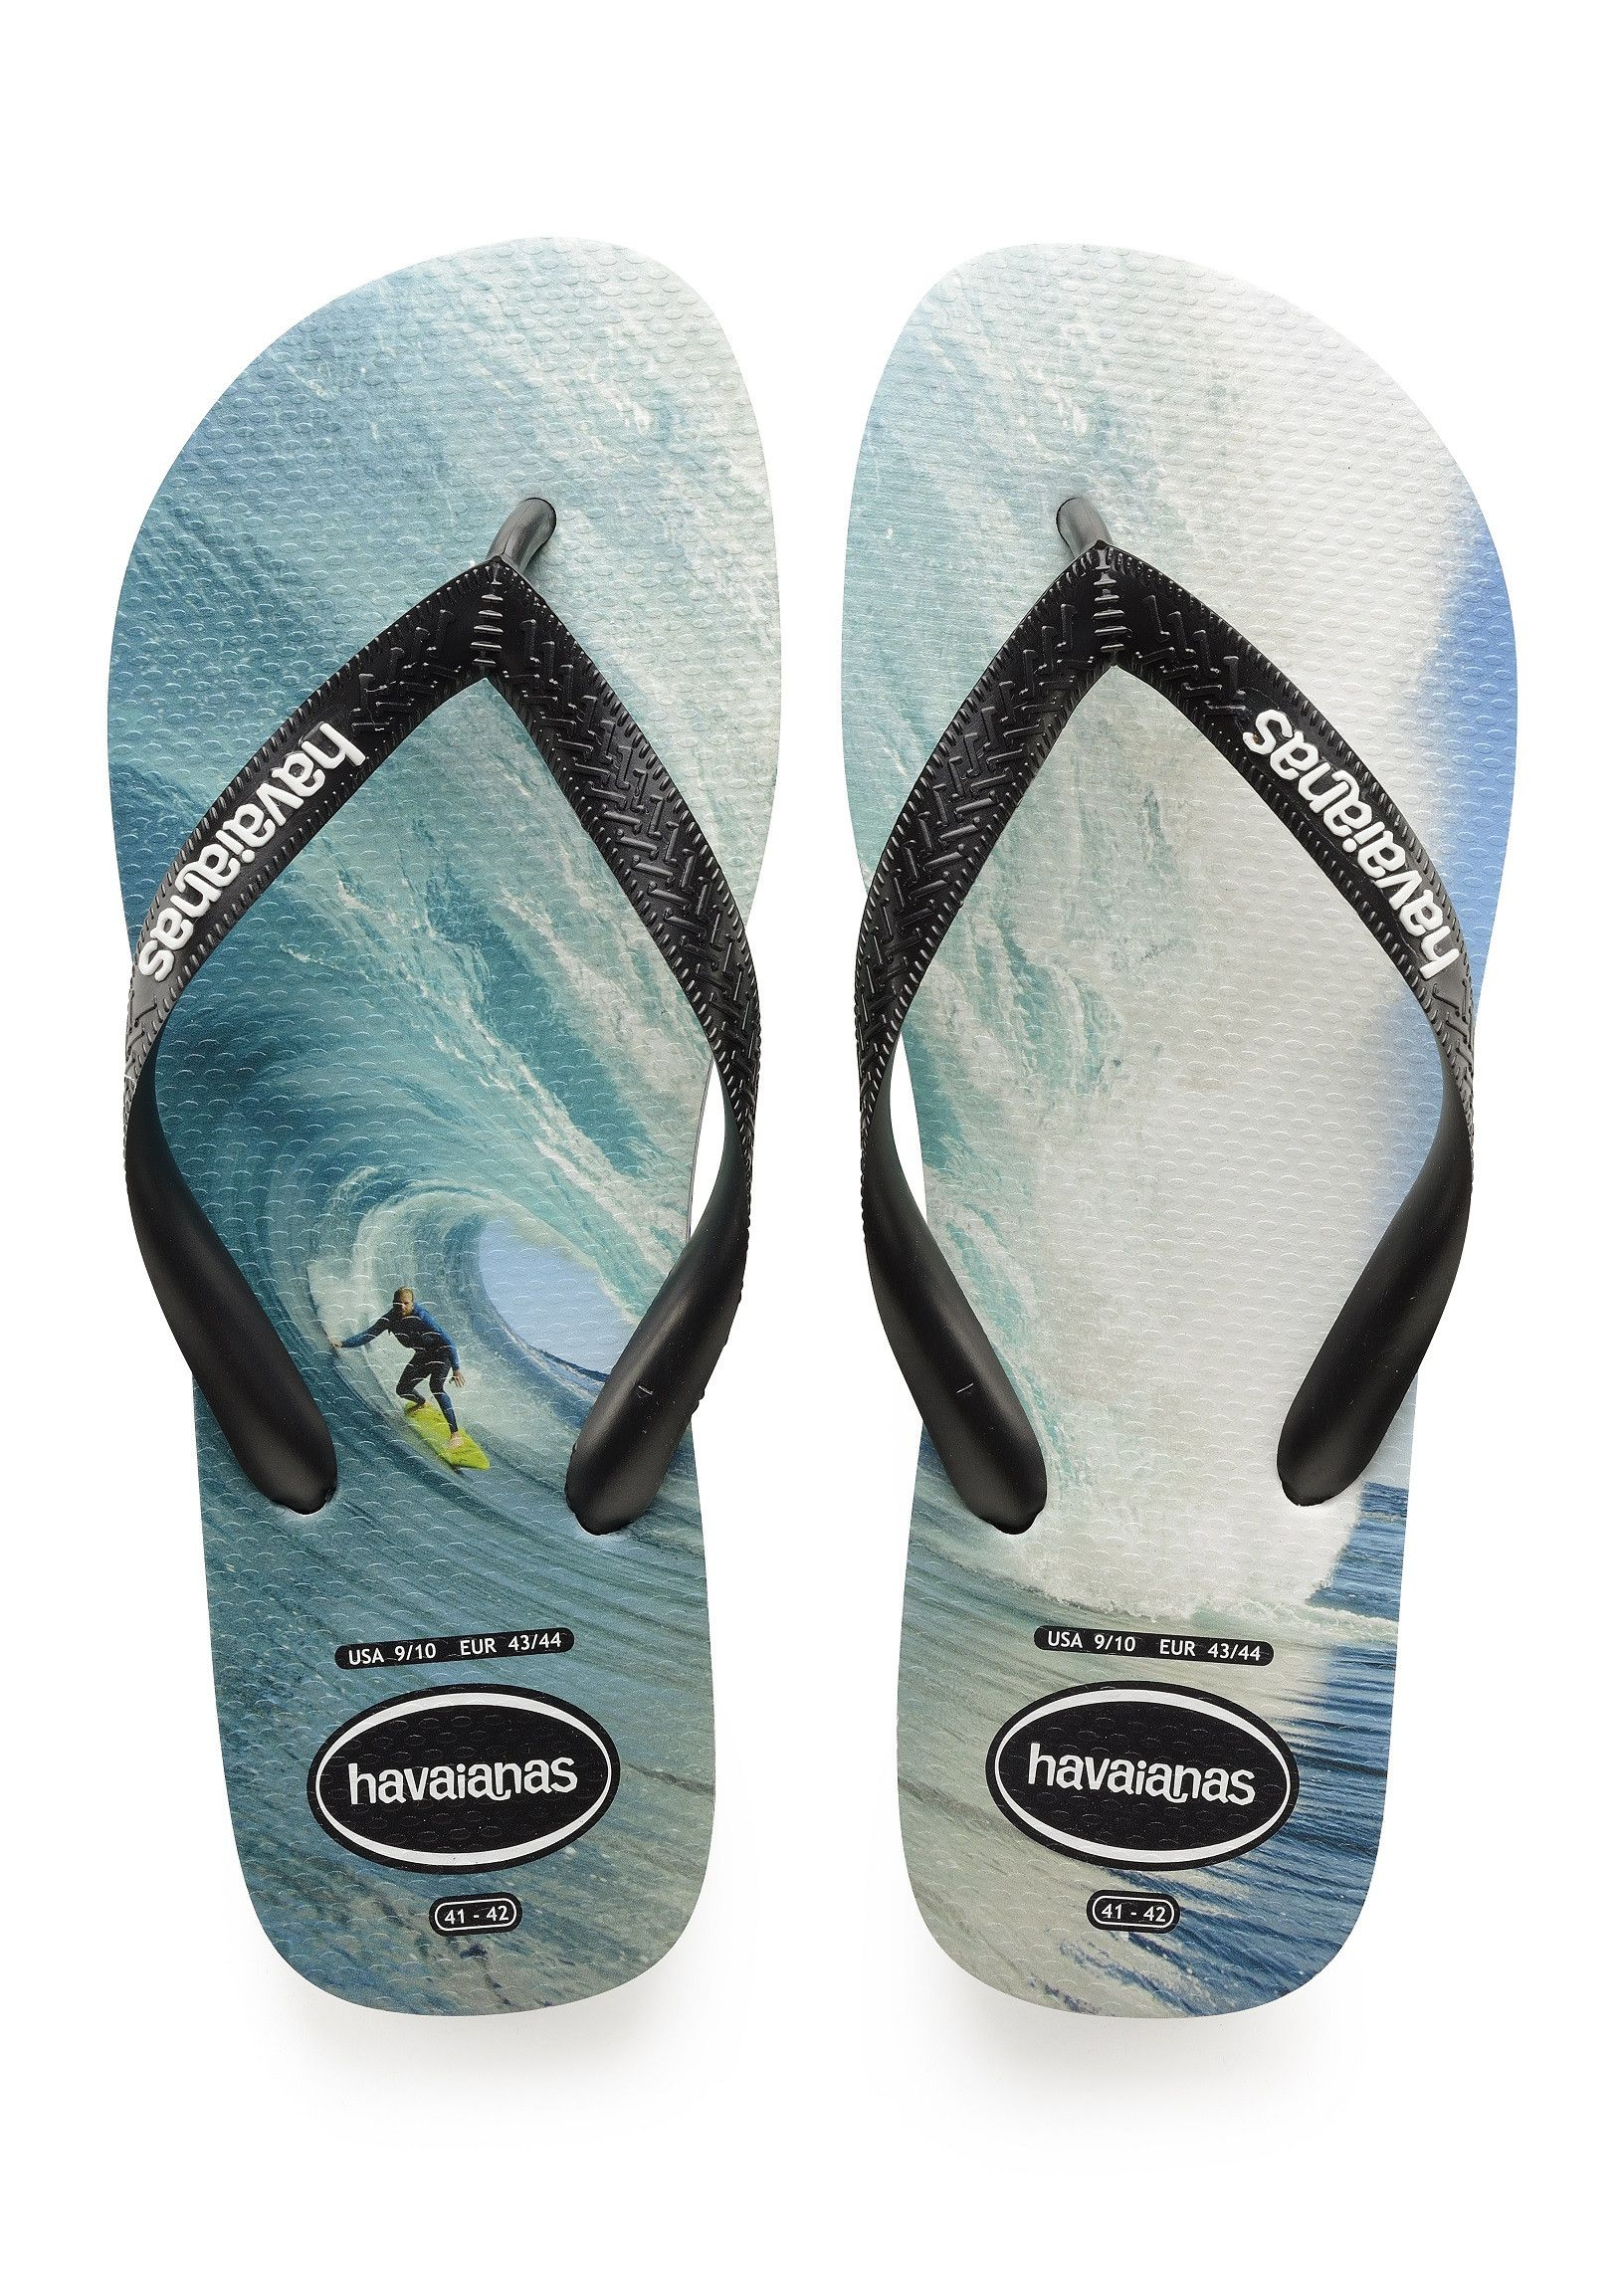 0b2a68c77 Havaianas Top Photoprint Sandal Black Black Blue Price From  £17.88